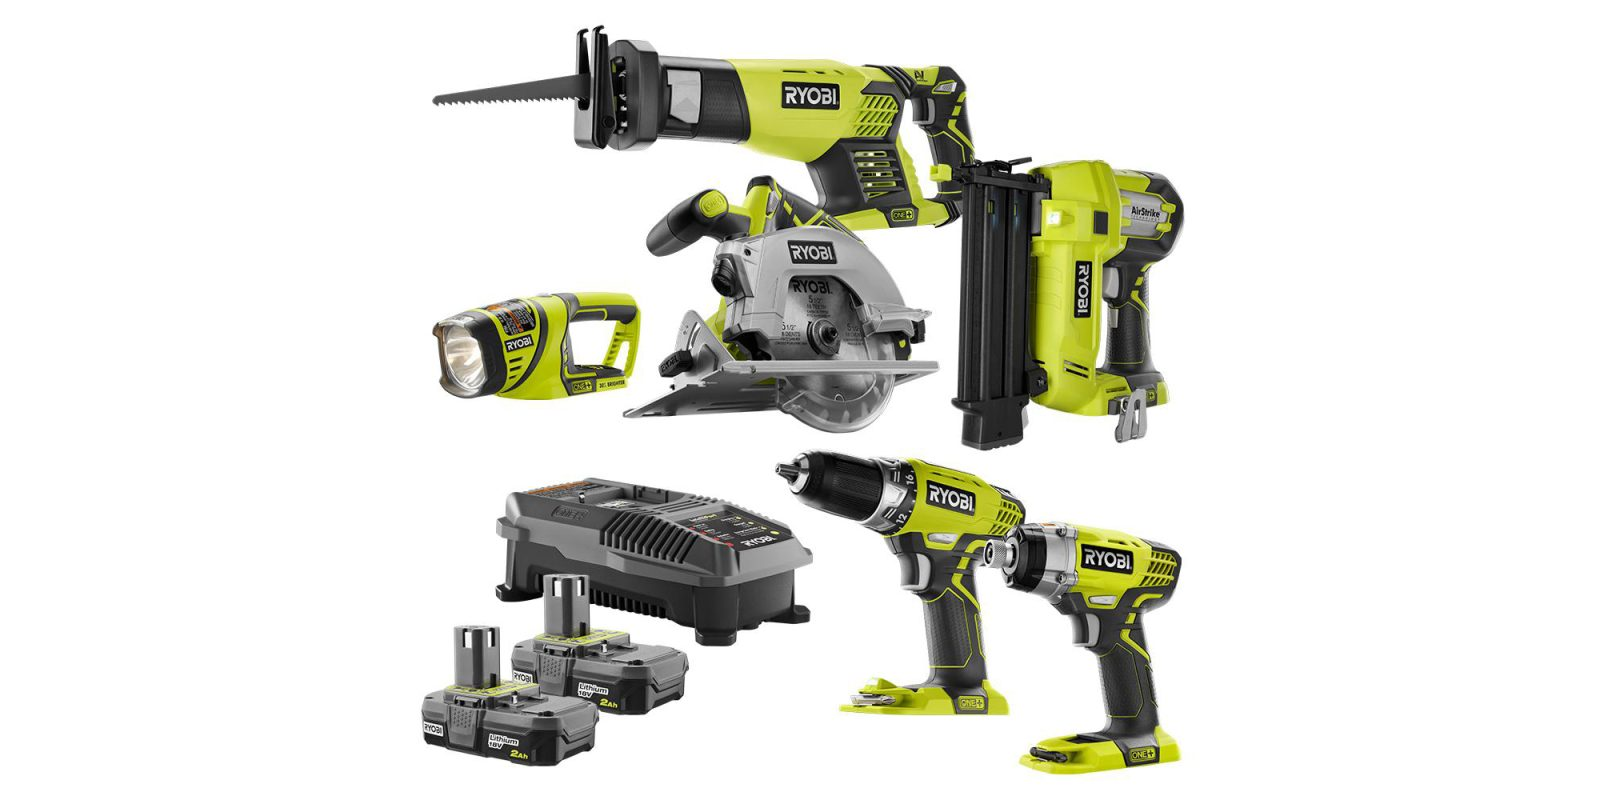 Ryobi includes six tools, multiple batteries, more in this $279 kit (Reg. $325+)